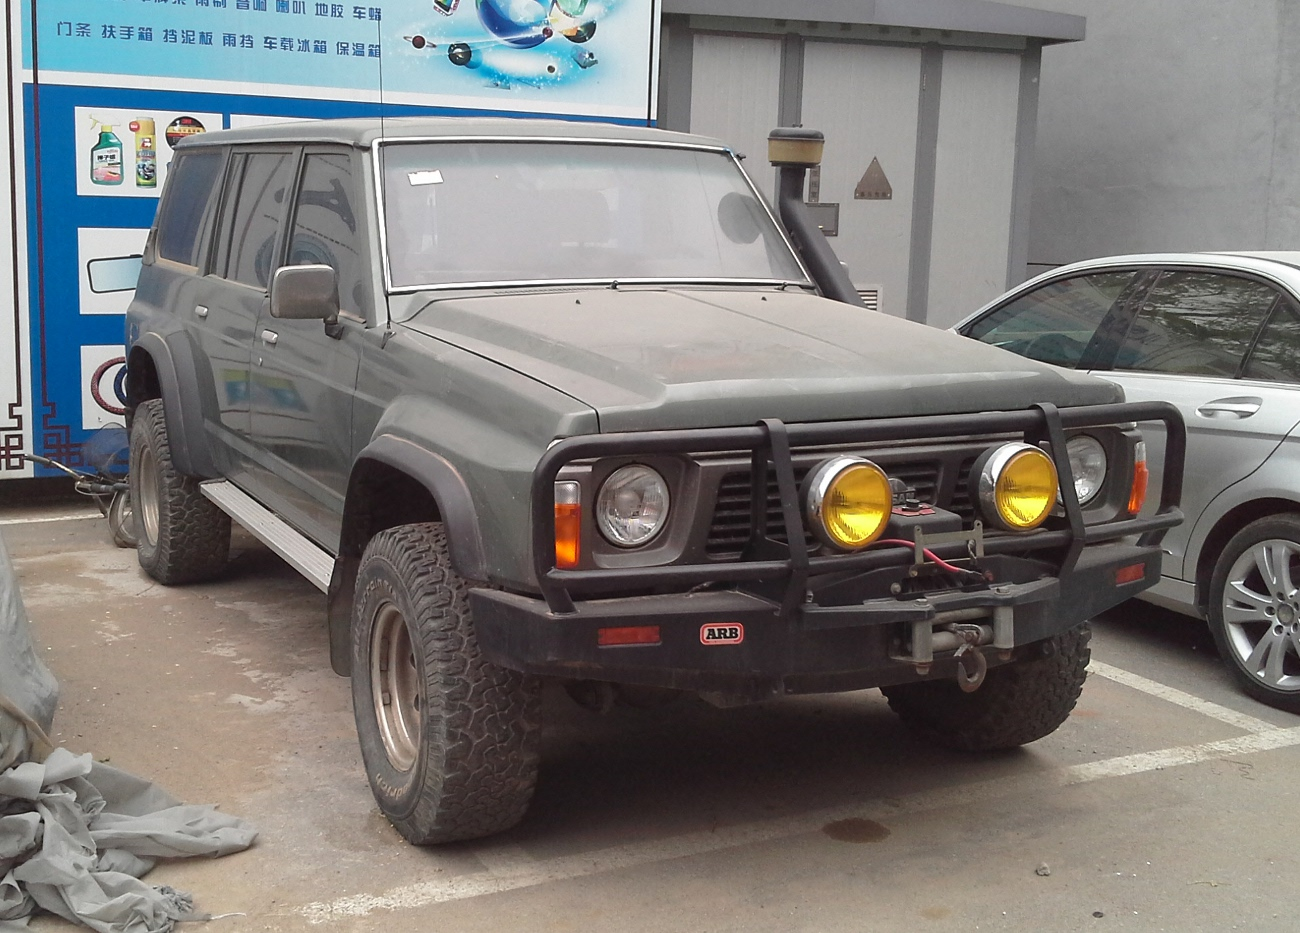 file:nissan patrol y60 lwb 001 china 2015-04-18 - wikimedia commons